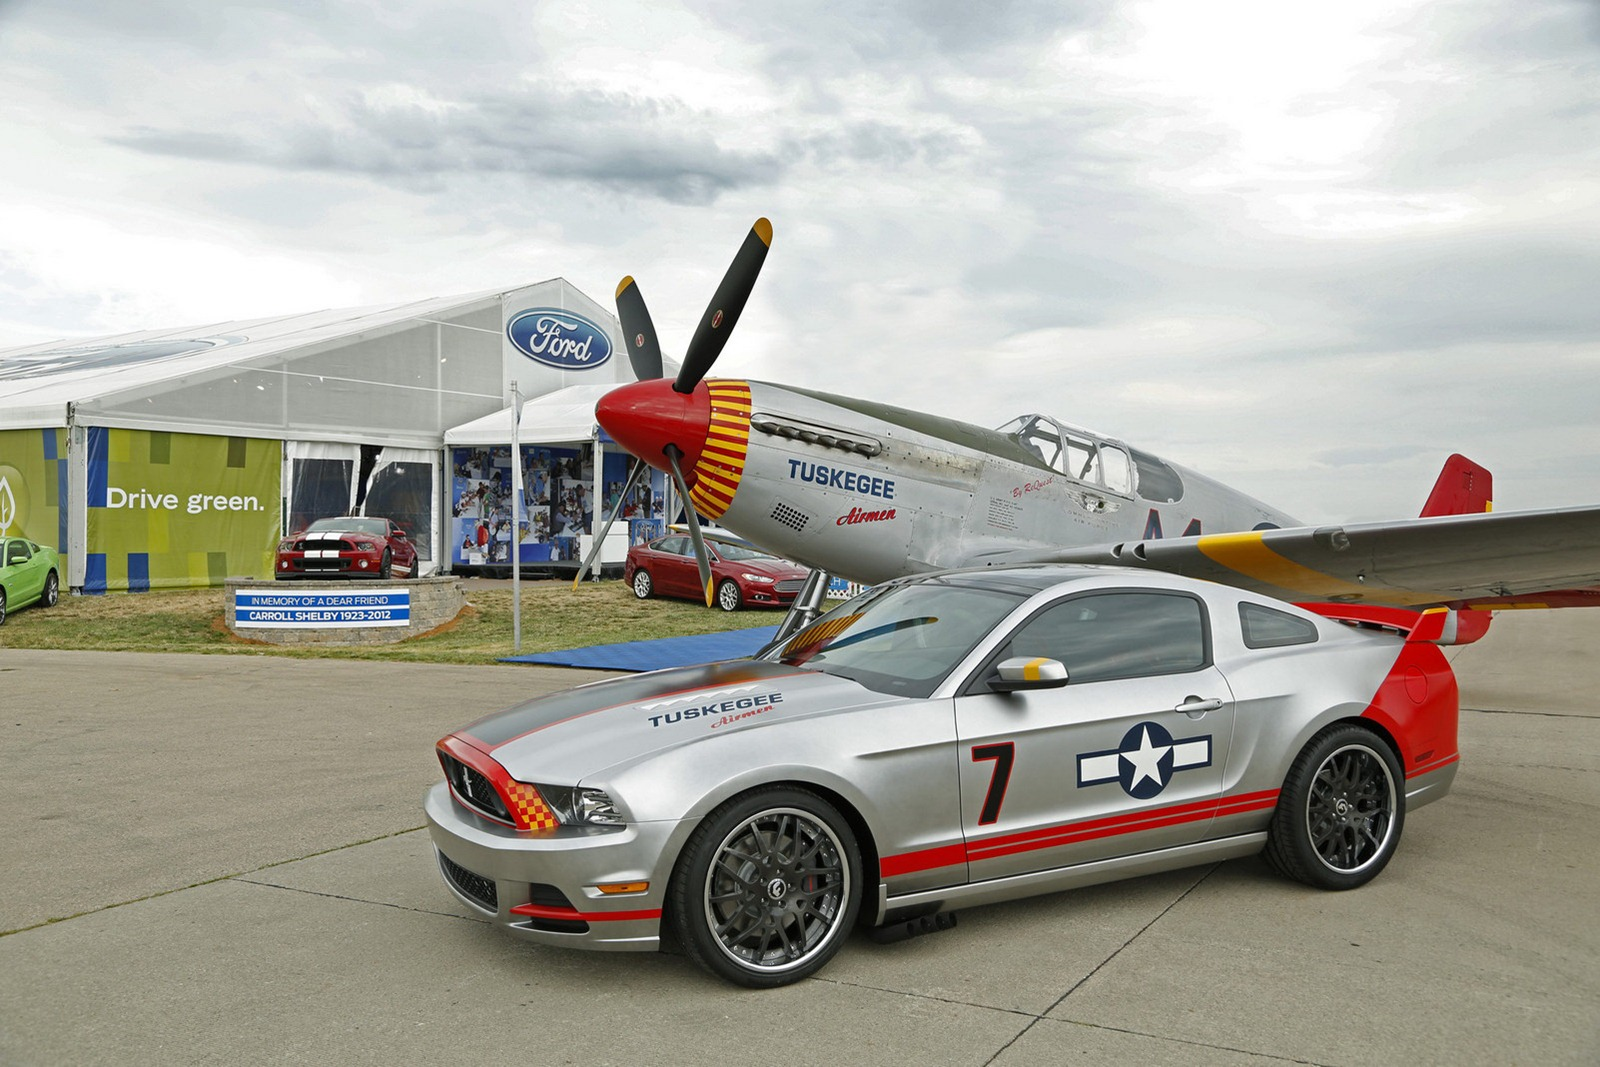 2013 Mustang Gt Livered After P51 Fighter Autoevolution P51